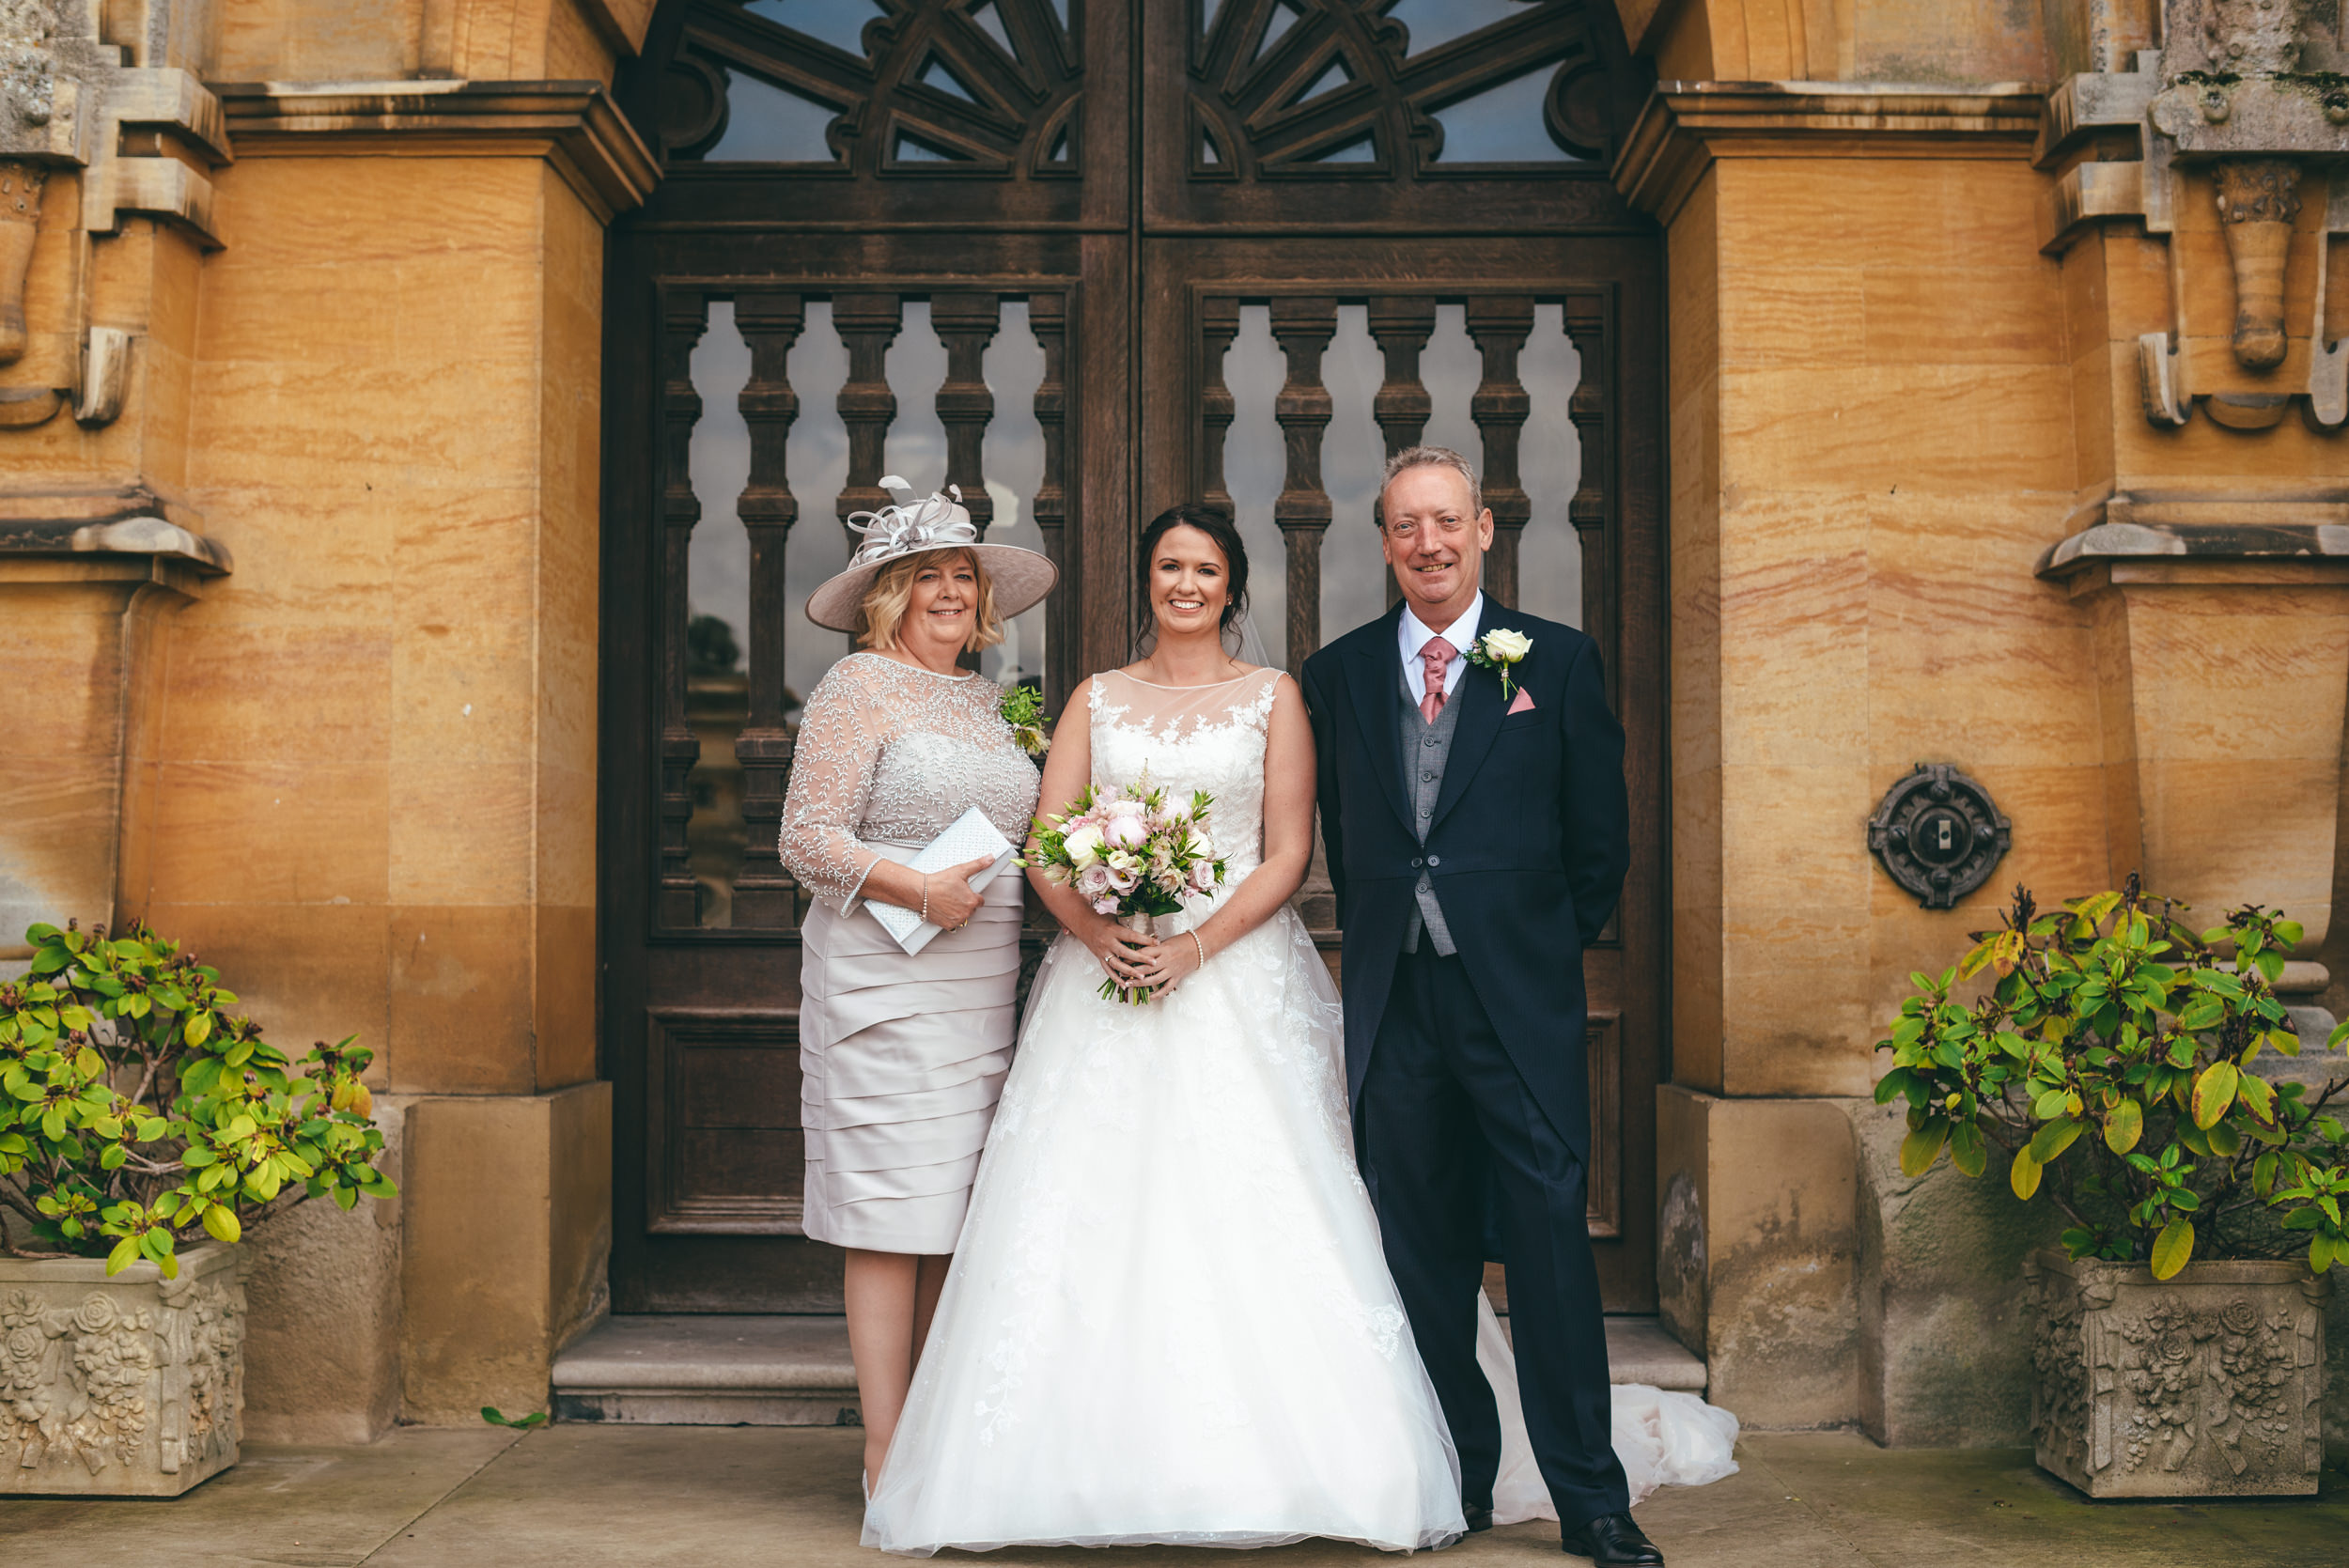 A photograph of the Bride and her parents at her wedding at Harlaxton Manor